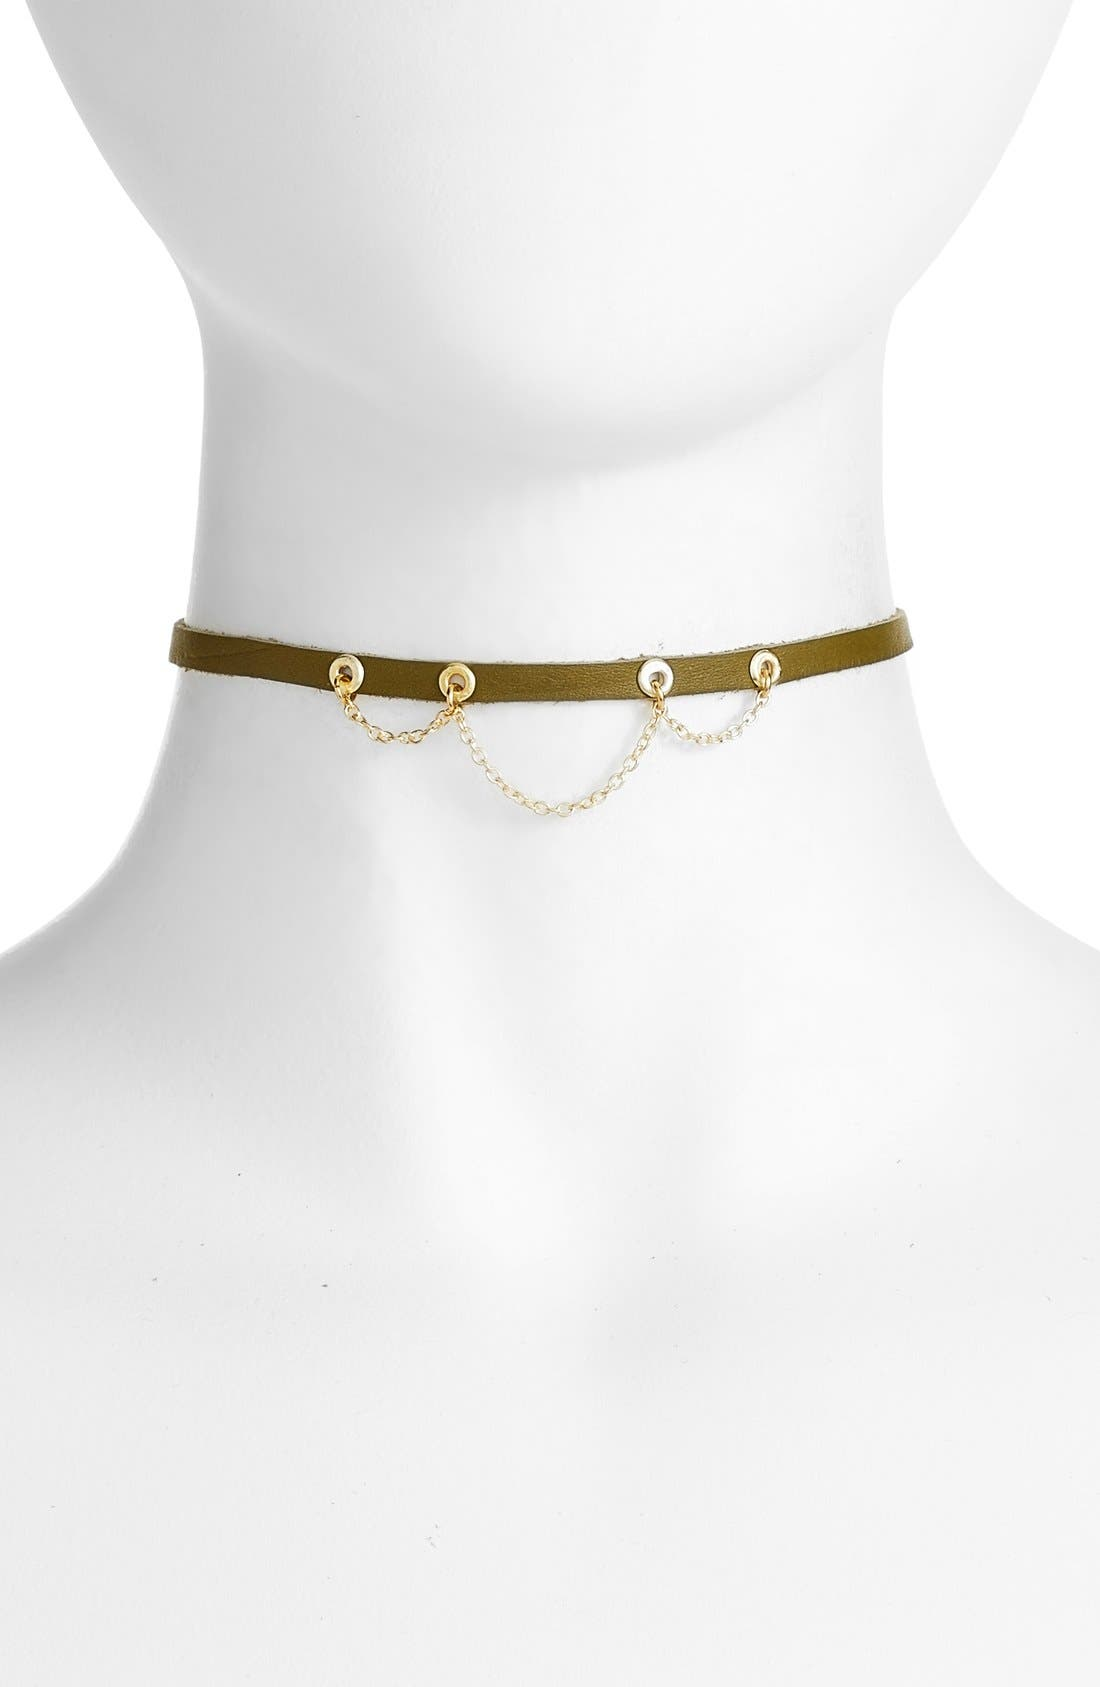 Nashelle Leather & Chain Choker